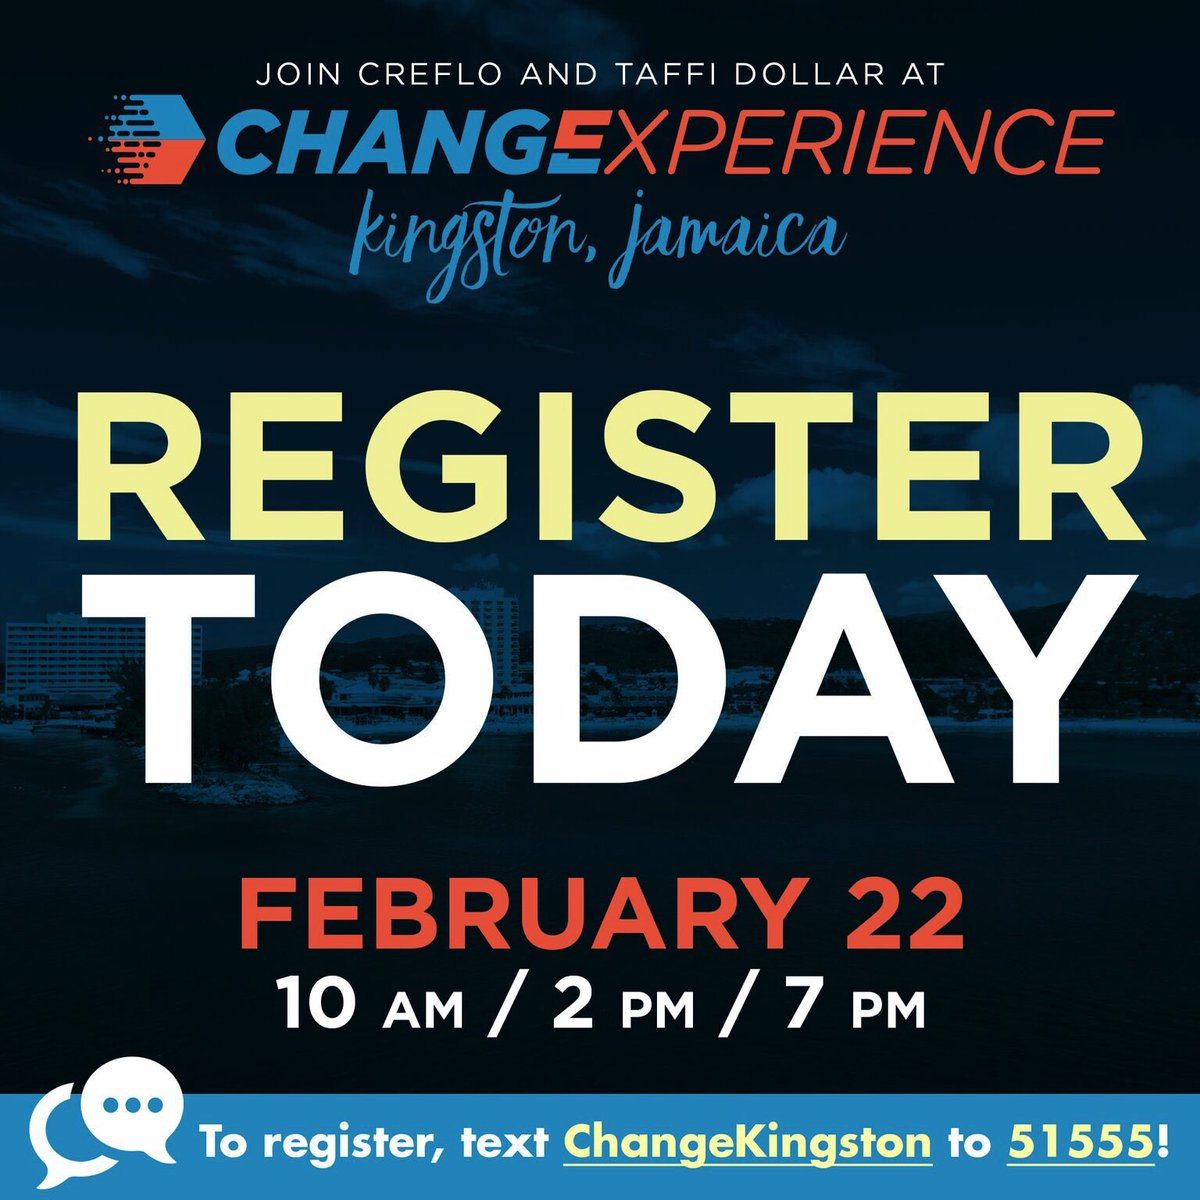 Jamaica, we are days away from Change Experience 2019, in Kingston. We are beyond excited to challenge your thinking, as it relates to the Word of God. Join us,February 22, at the Pegasus Hotel at 10am, 2pm and 7pm. Register here …https://changeexperience2019kingston.eventbrite.com   #ChangeExperience2019